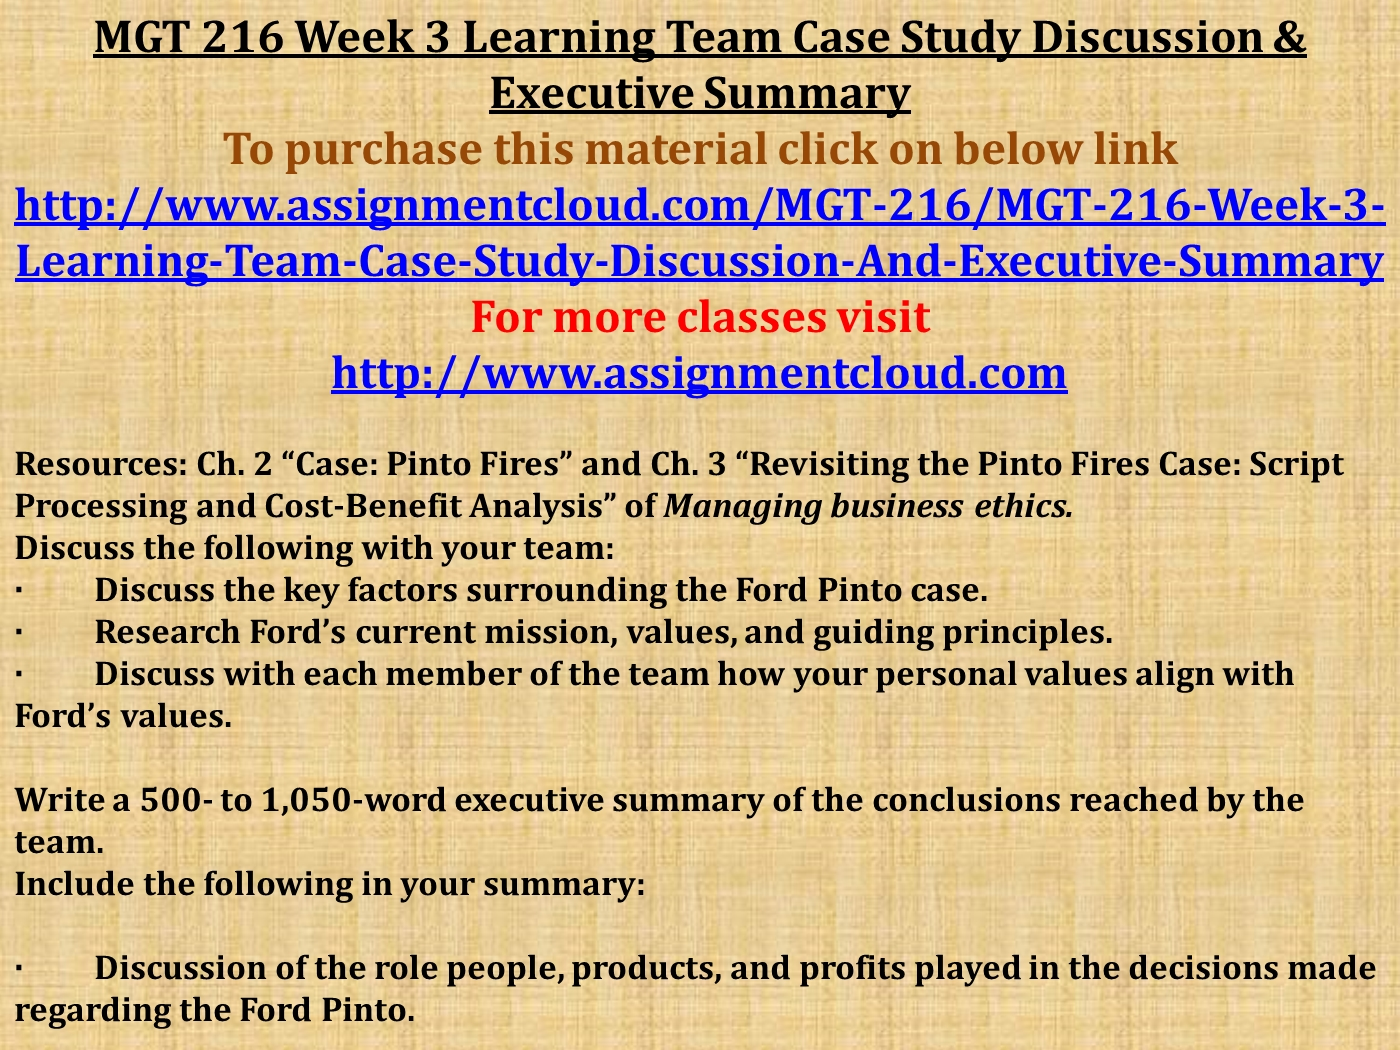 MGT 216 Week 3 Learning Team Case Study Discussion & Executive